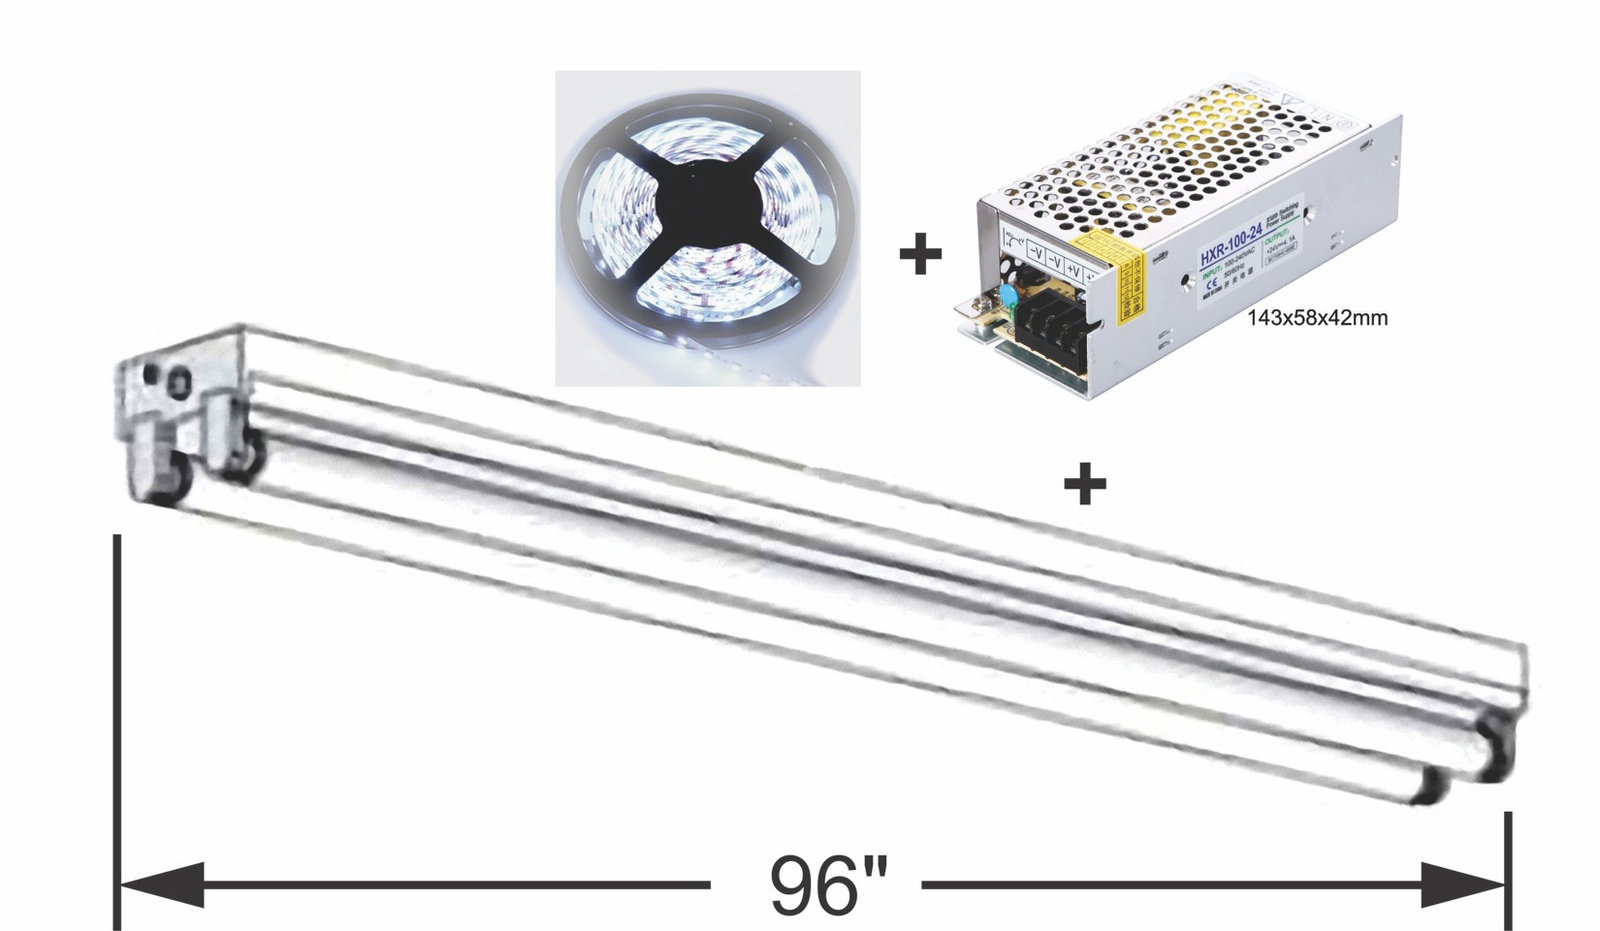 Kit: 150W Power Supply+ 2x 16' LED Strips, Bright Wht, Florescent Tube Retrofit